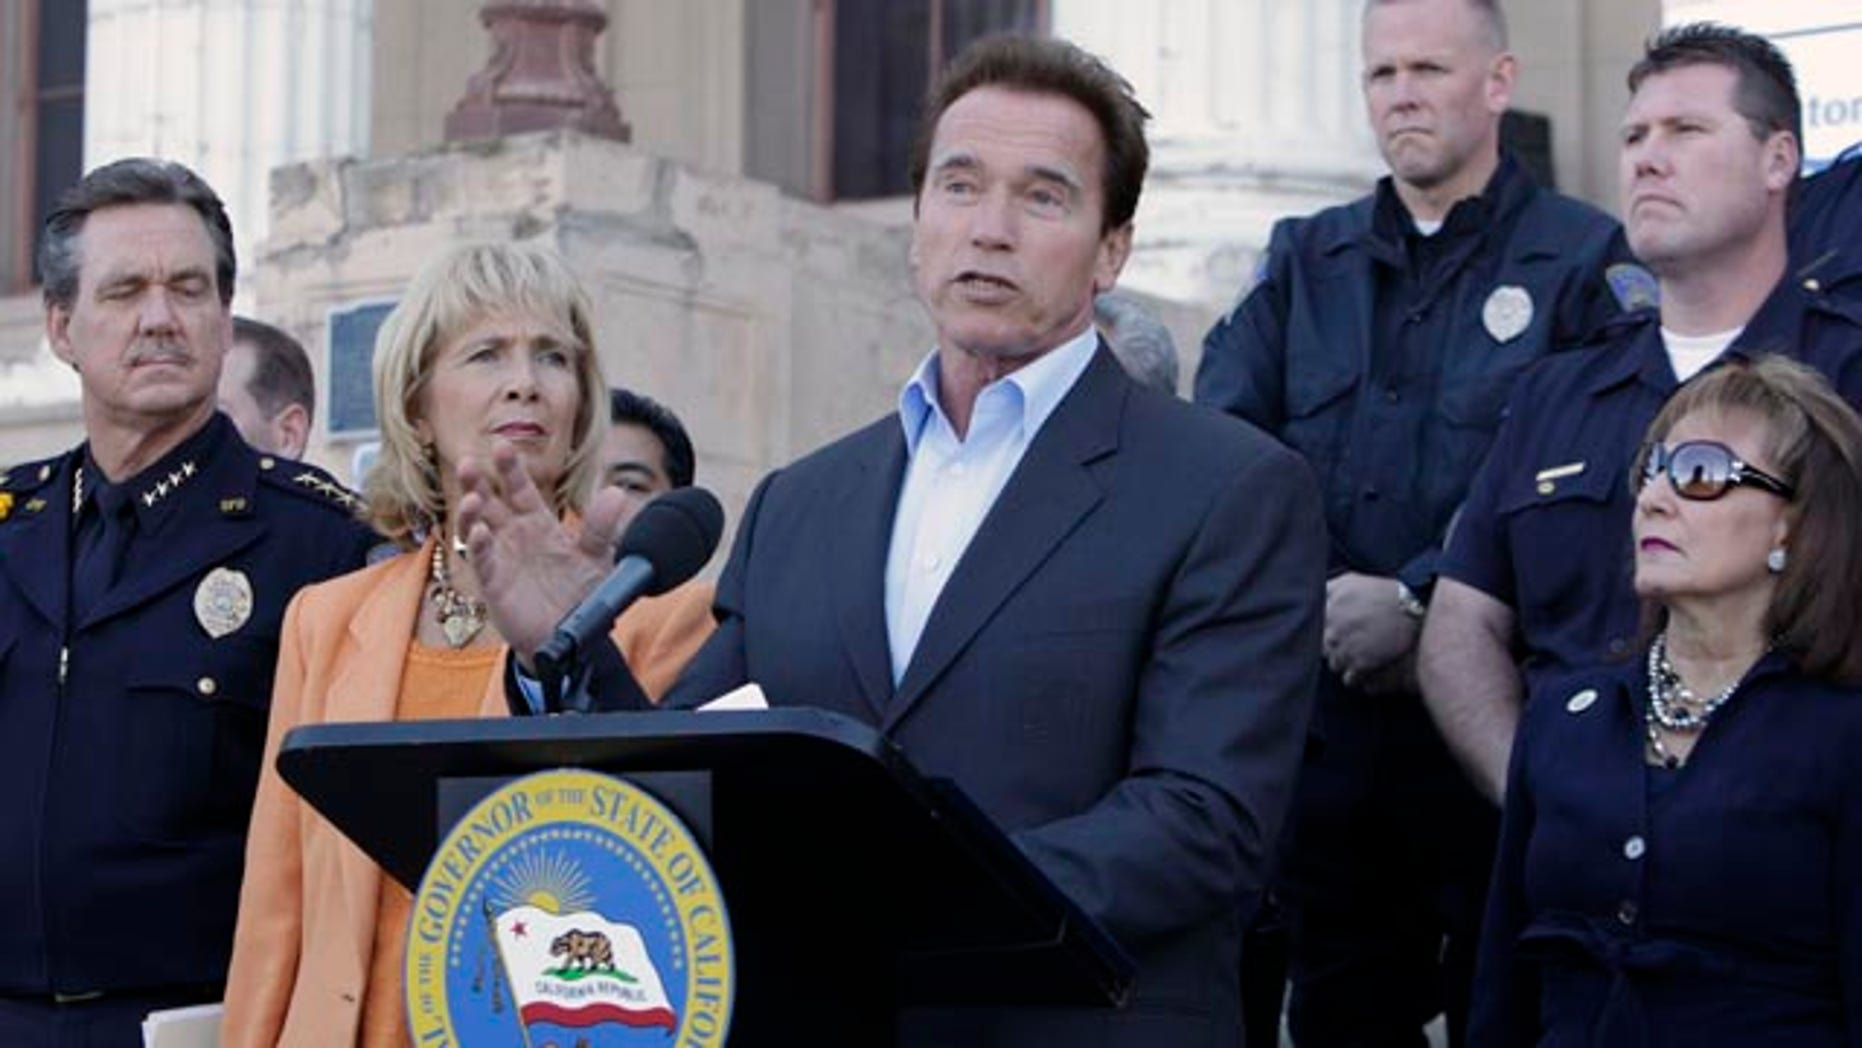 Gov. Arnold Schwarzenegger shown here Nov. 8, announced on Nov. 12 a special session of the Legislature to address a $6 billion deficit that emerged just weeks after he signed the state budget.